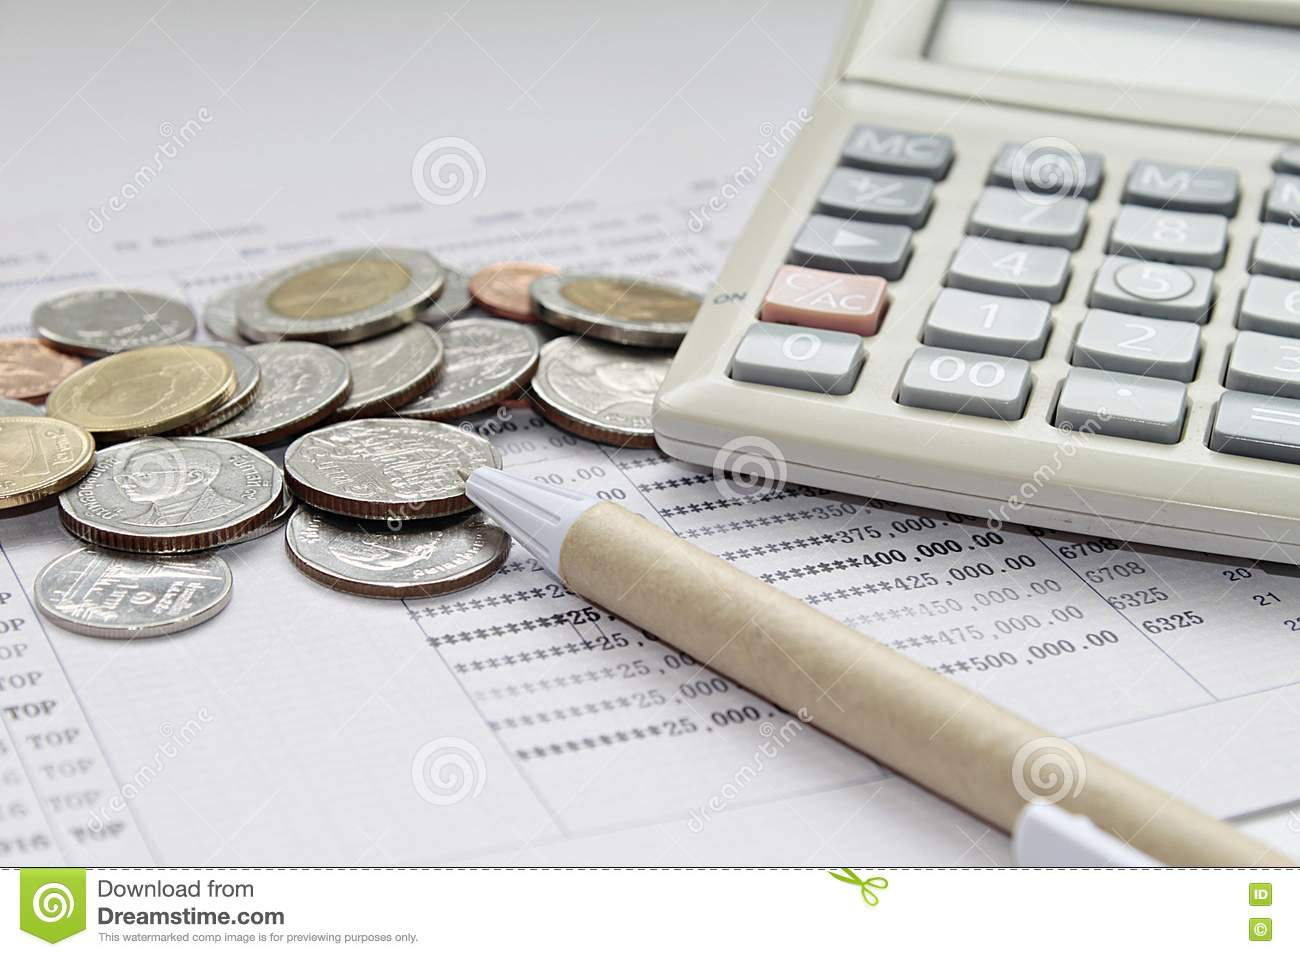 Coins Pen And Calculator On Savings Account Passbook Photo – Savings Account Calculator